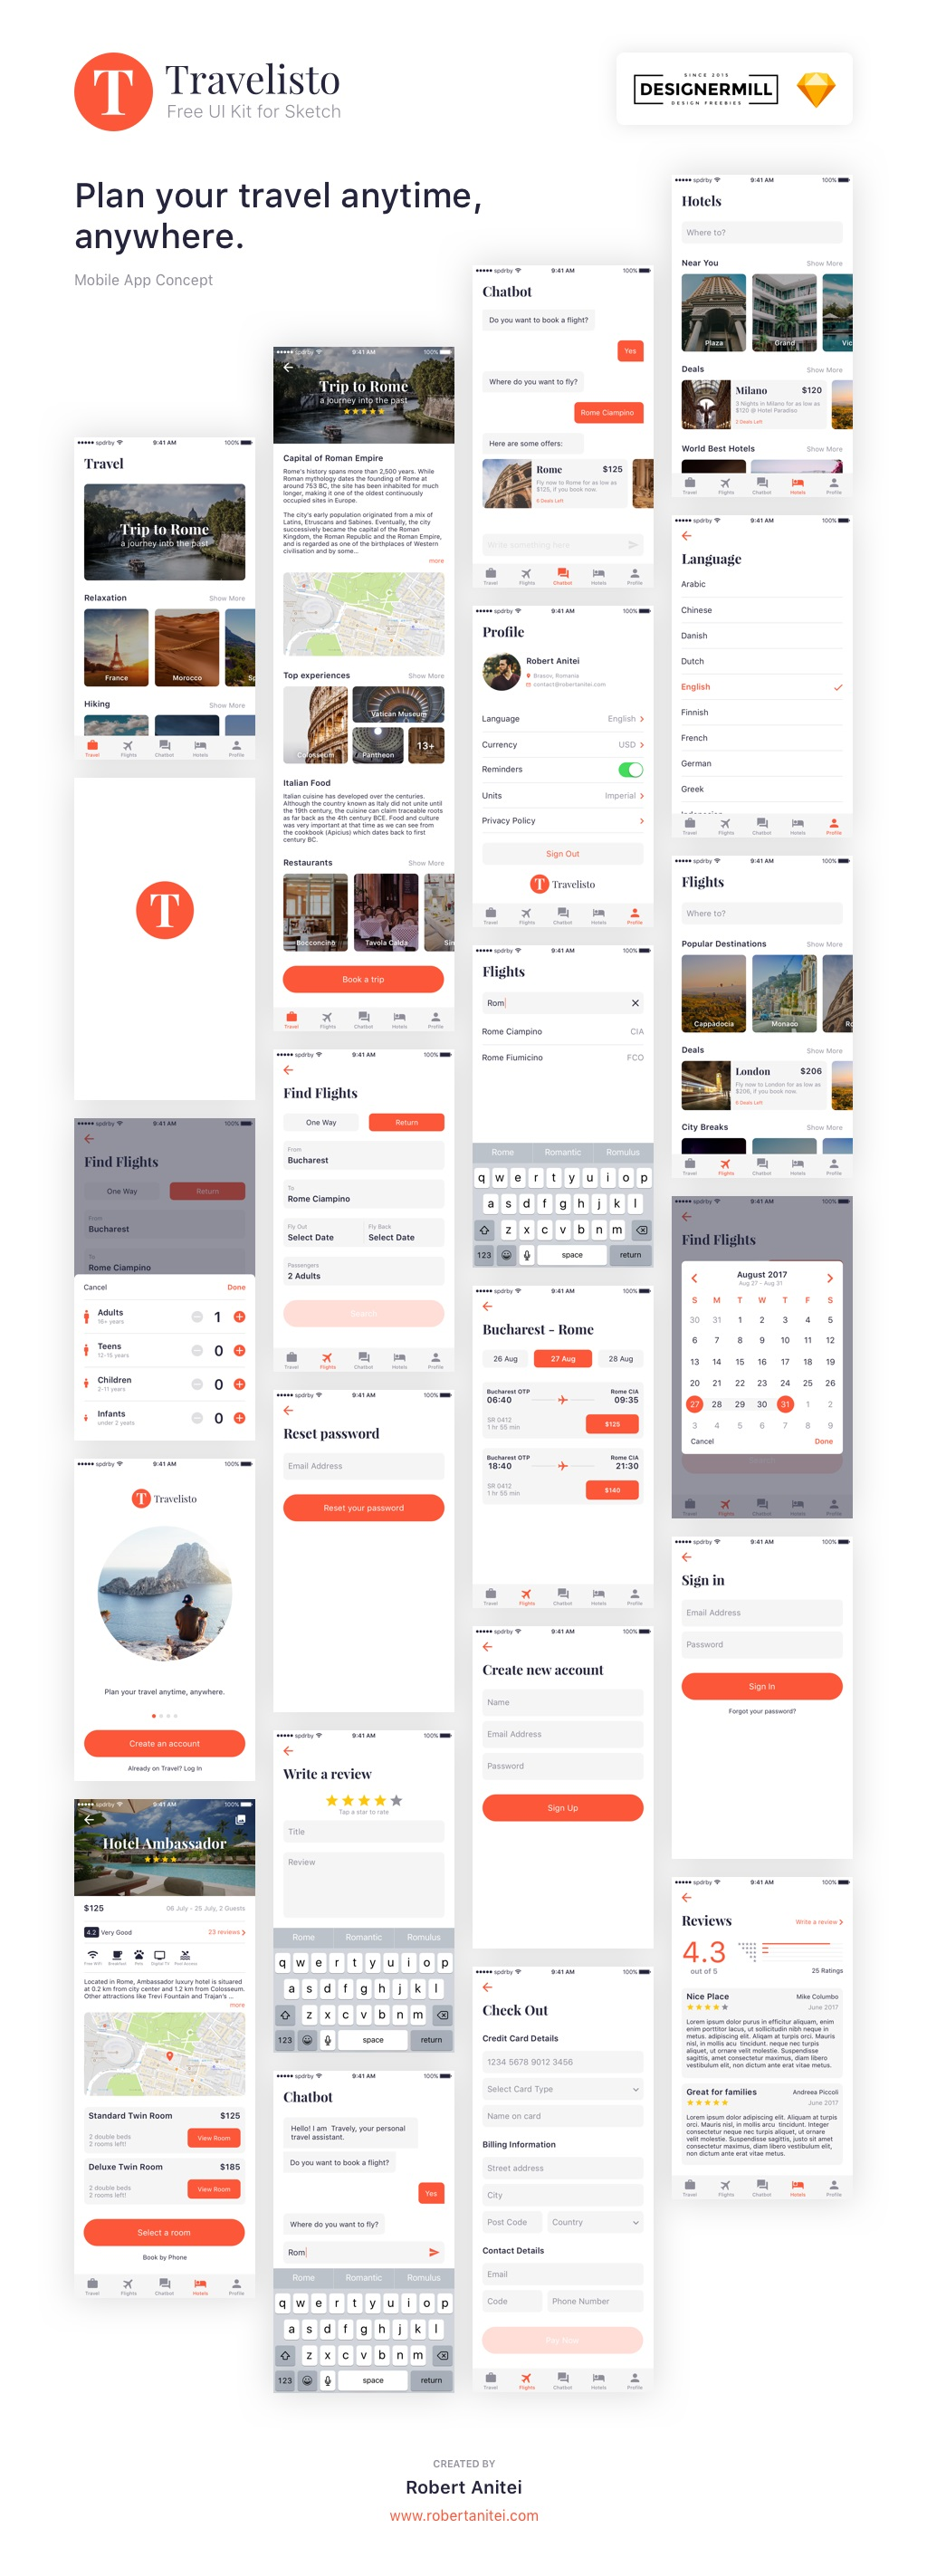 Free Travelisto UI Kit for Sketch